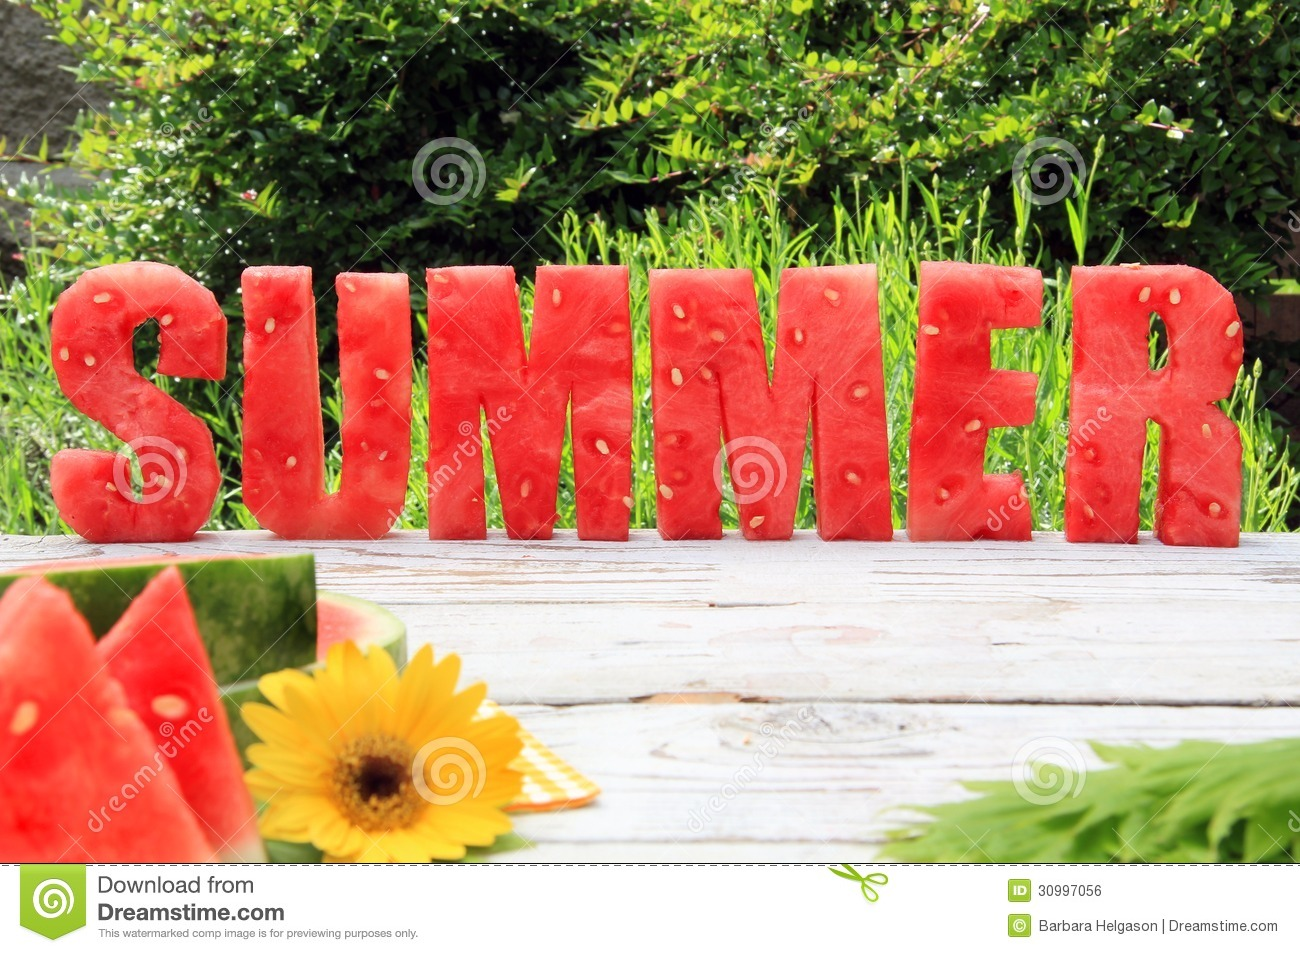 Watermelon Summer Royalty Free Stock Image - Image: 30997056